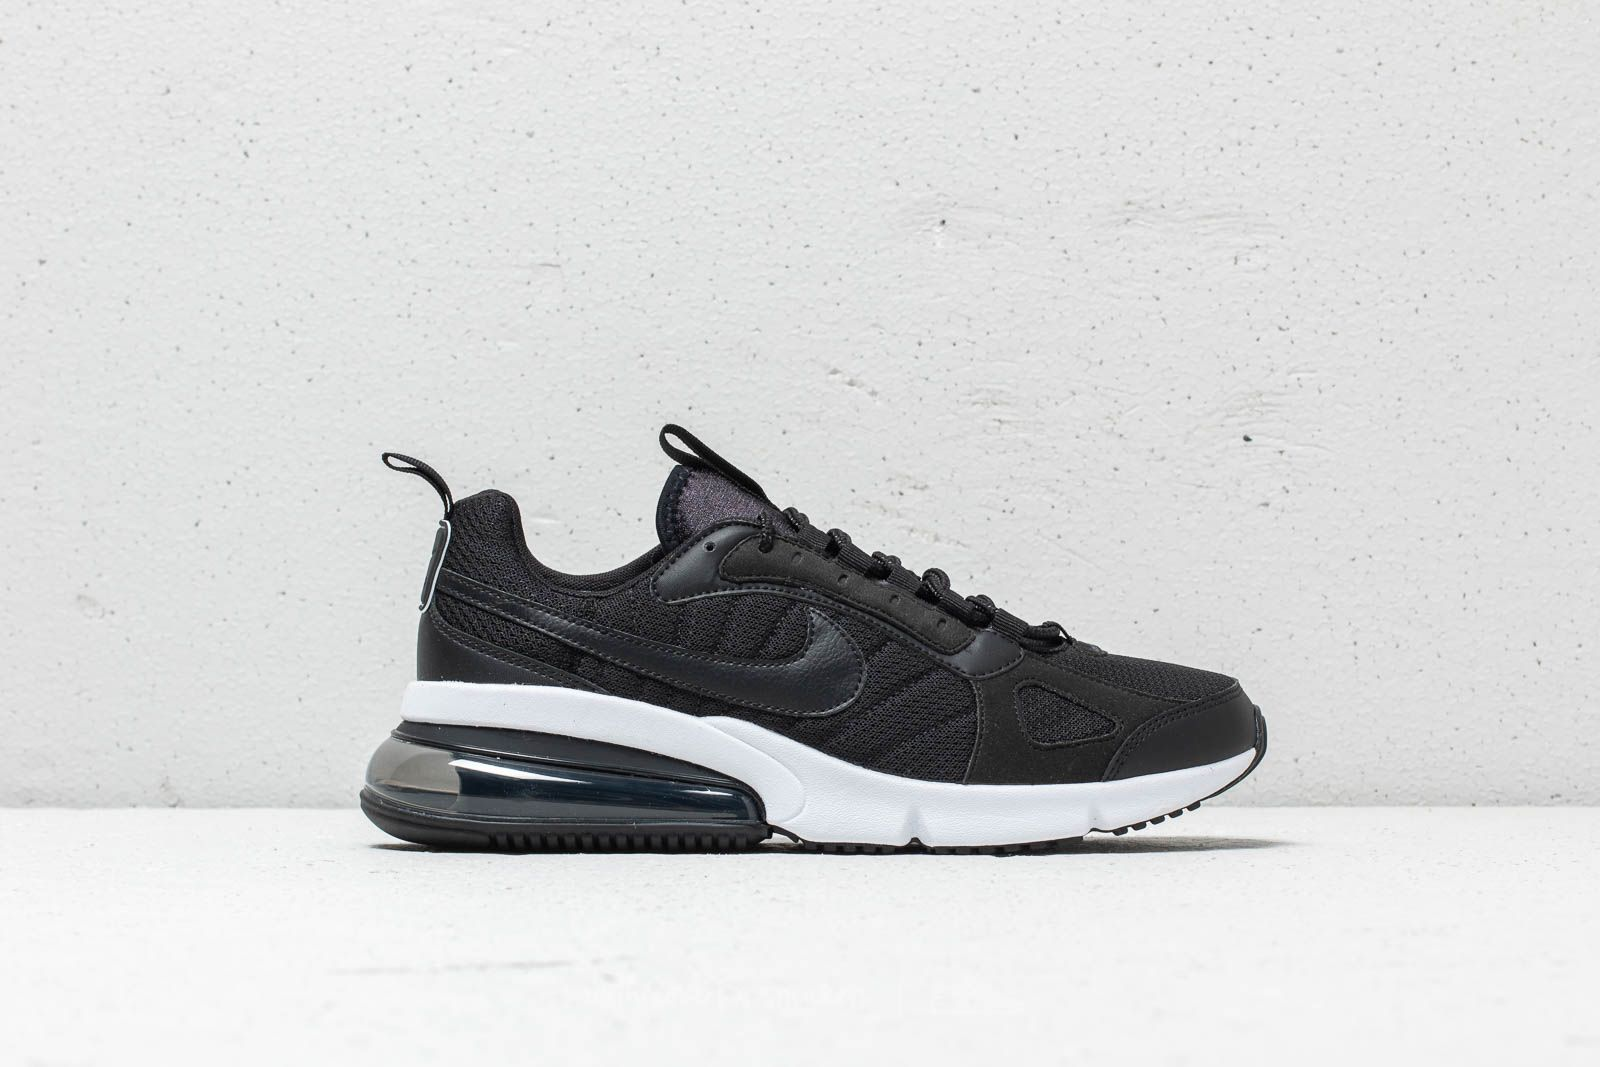 83795eaeb8 Nike Air Max 270 Futura Black/ Black-White at a great price 139 €